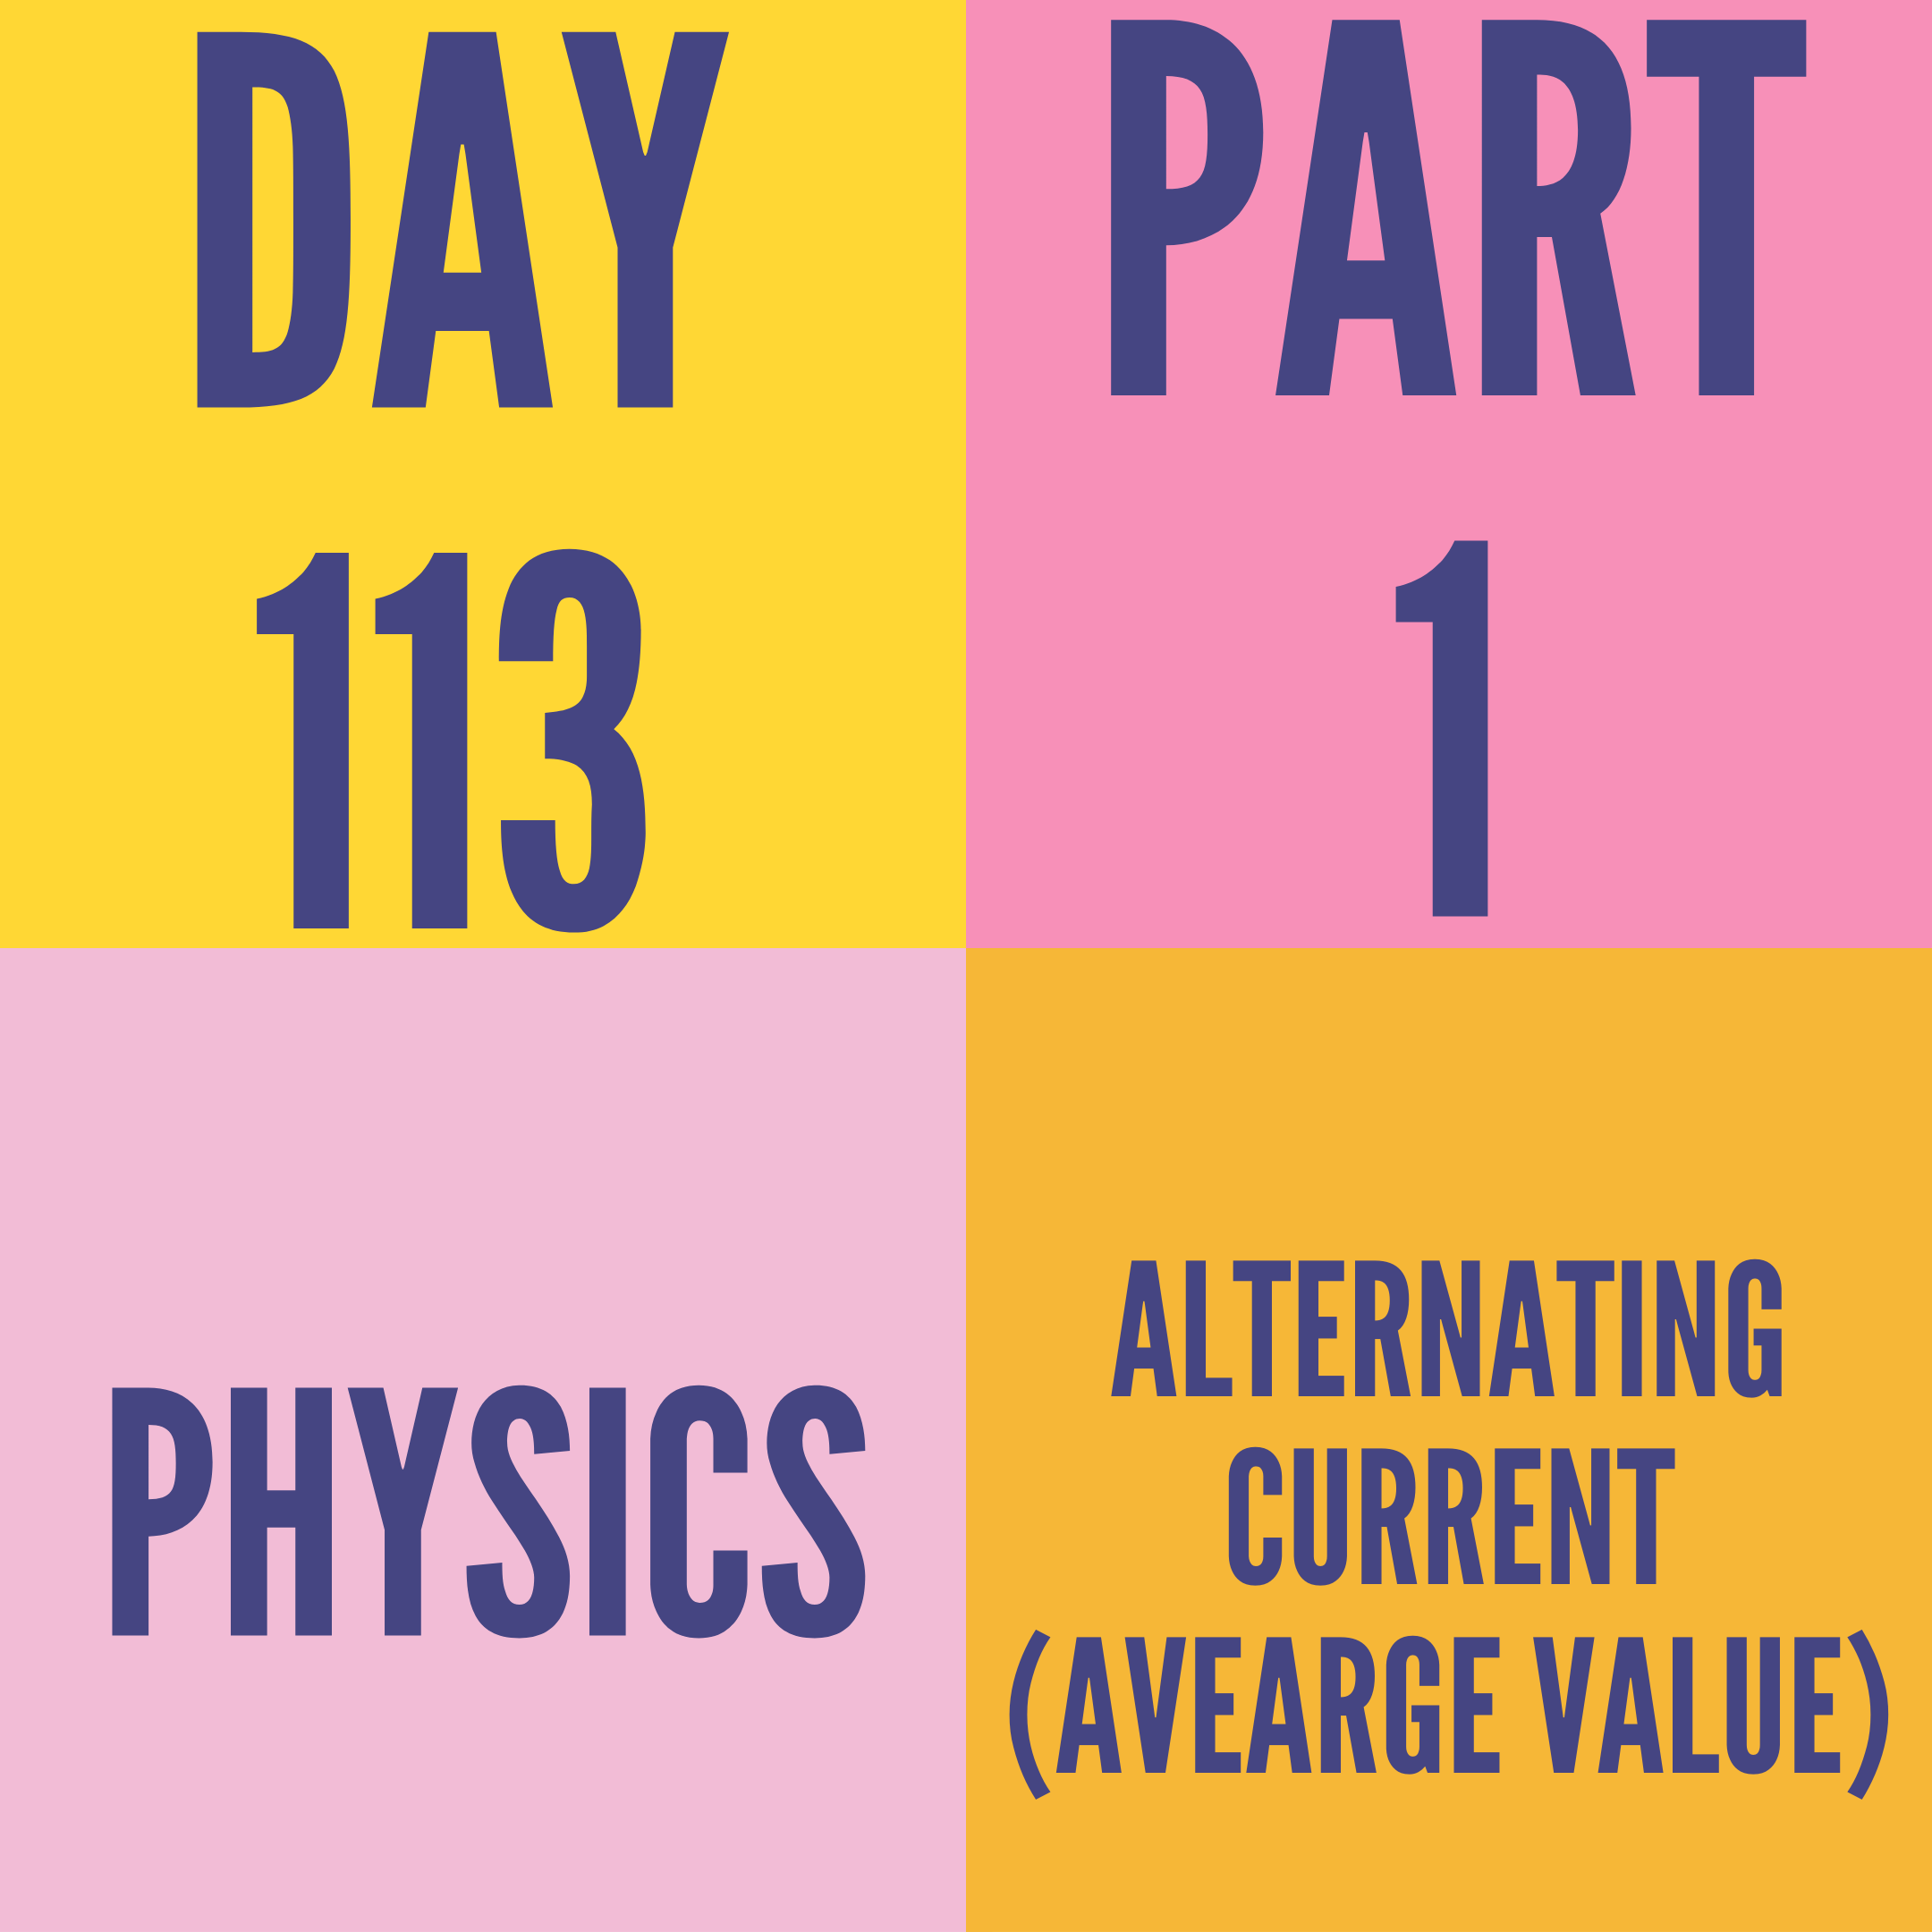 DAY-113 PART-1 ALTERNATING CURRENT (AVEARGE VALUE)